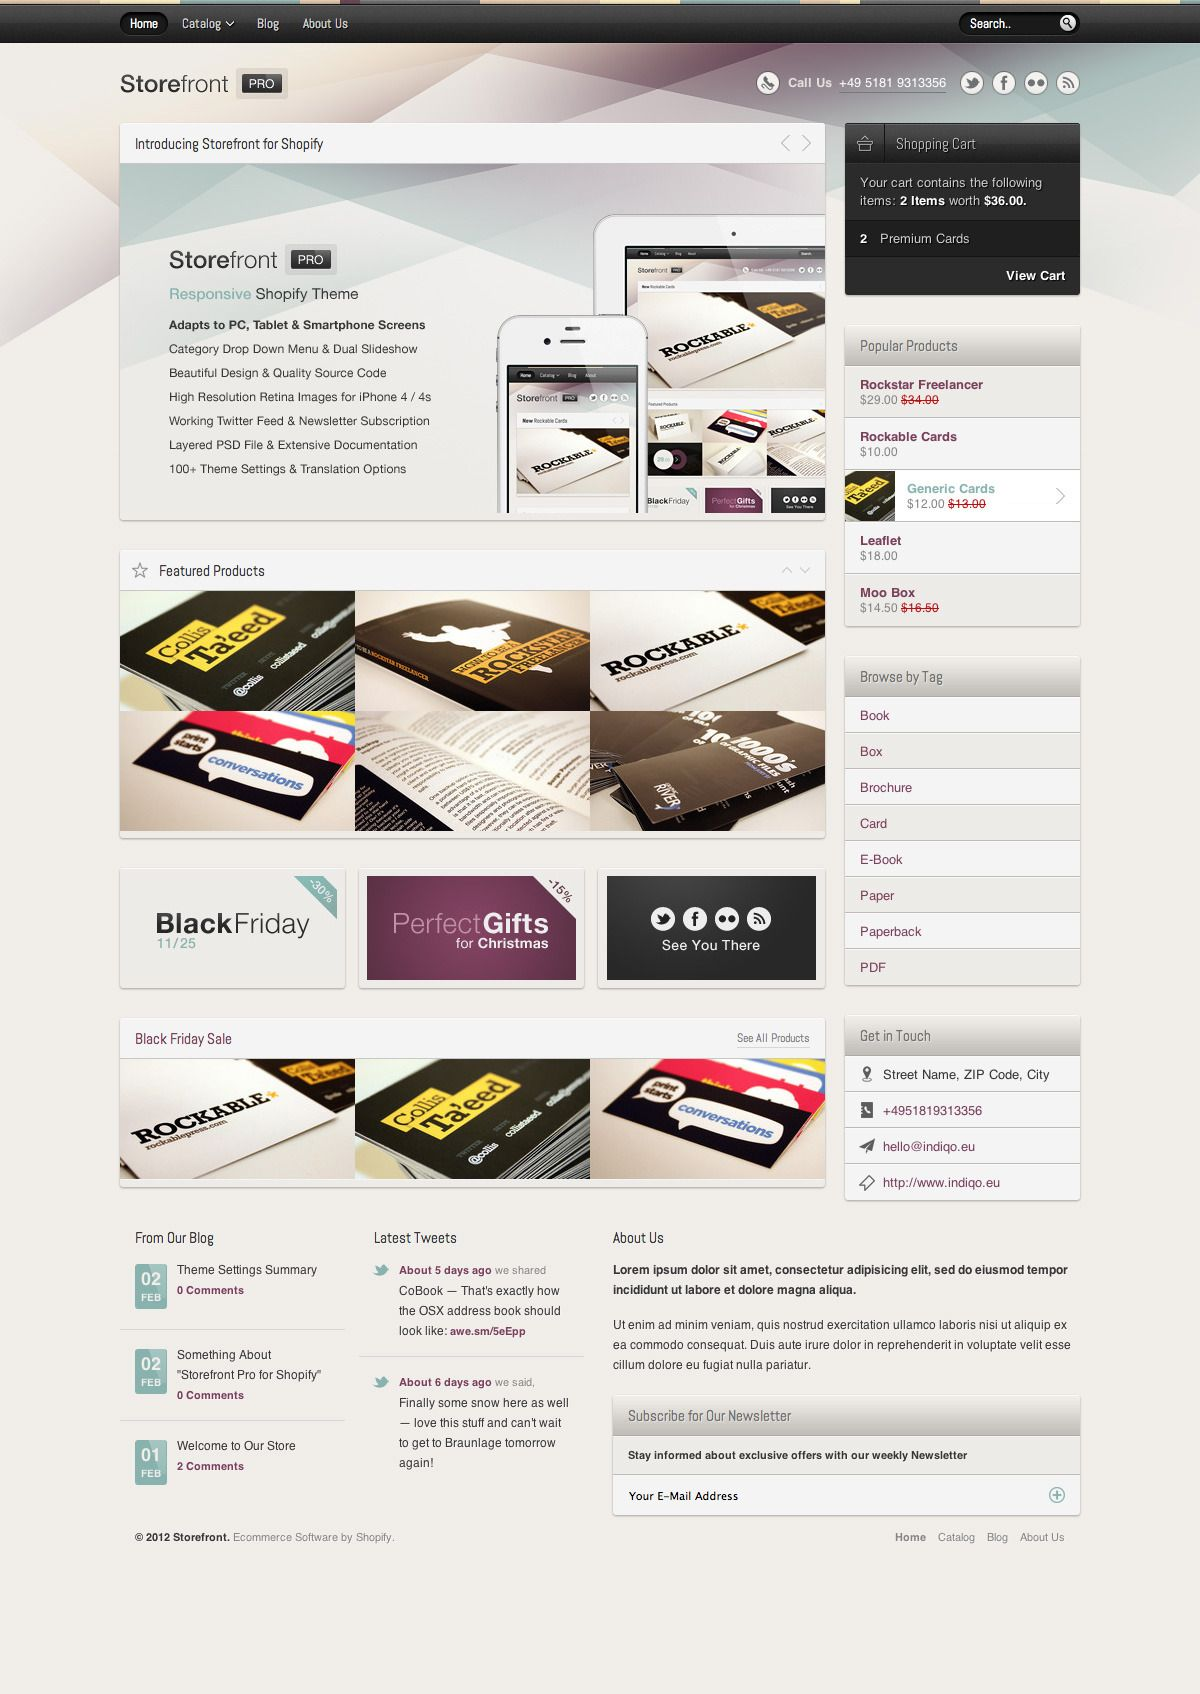 Storefront Pro for Shopify - Premium Theme #Pro, #Storefront